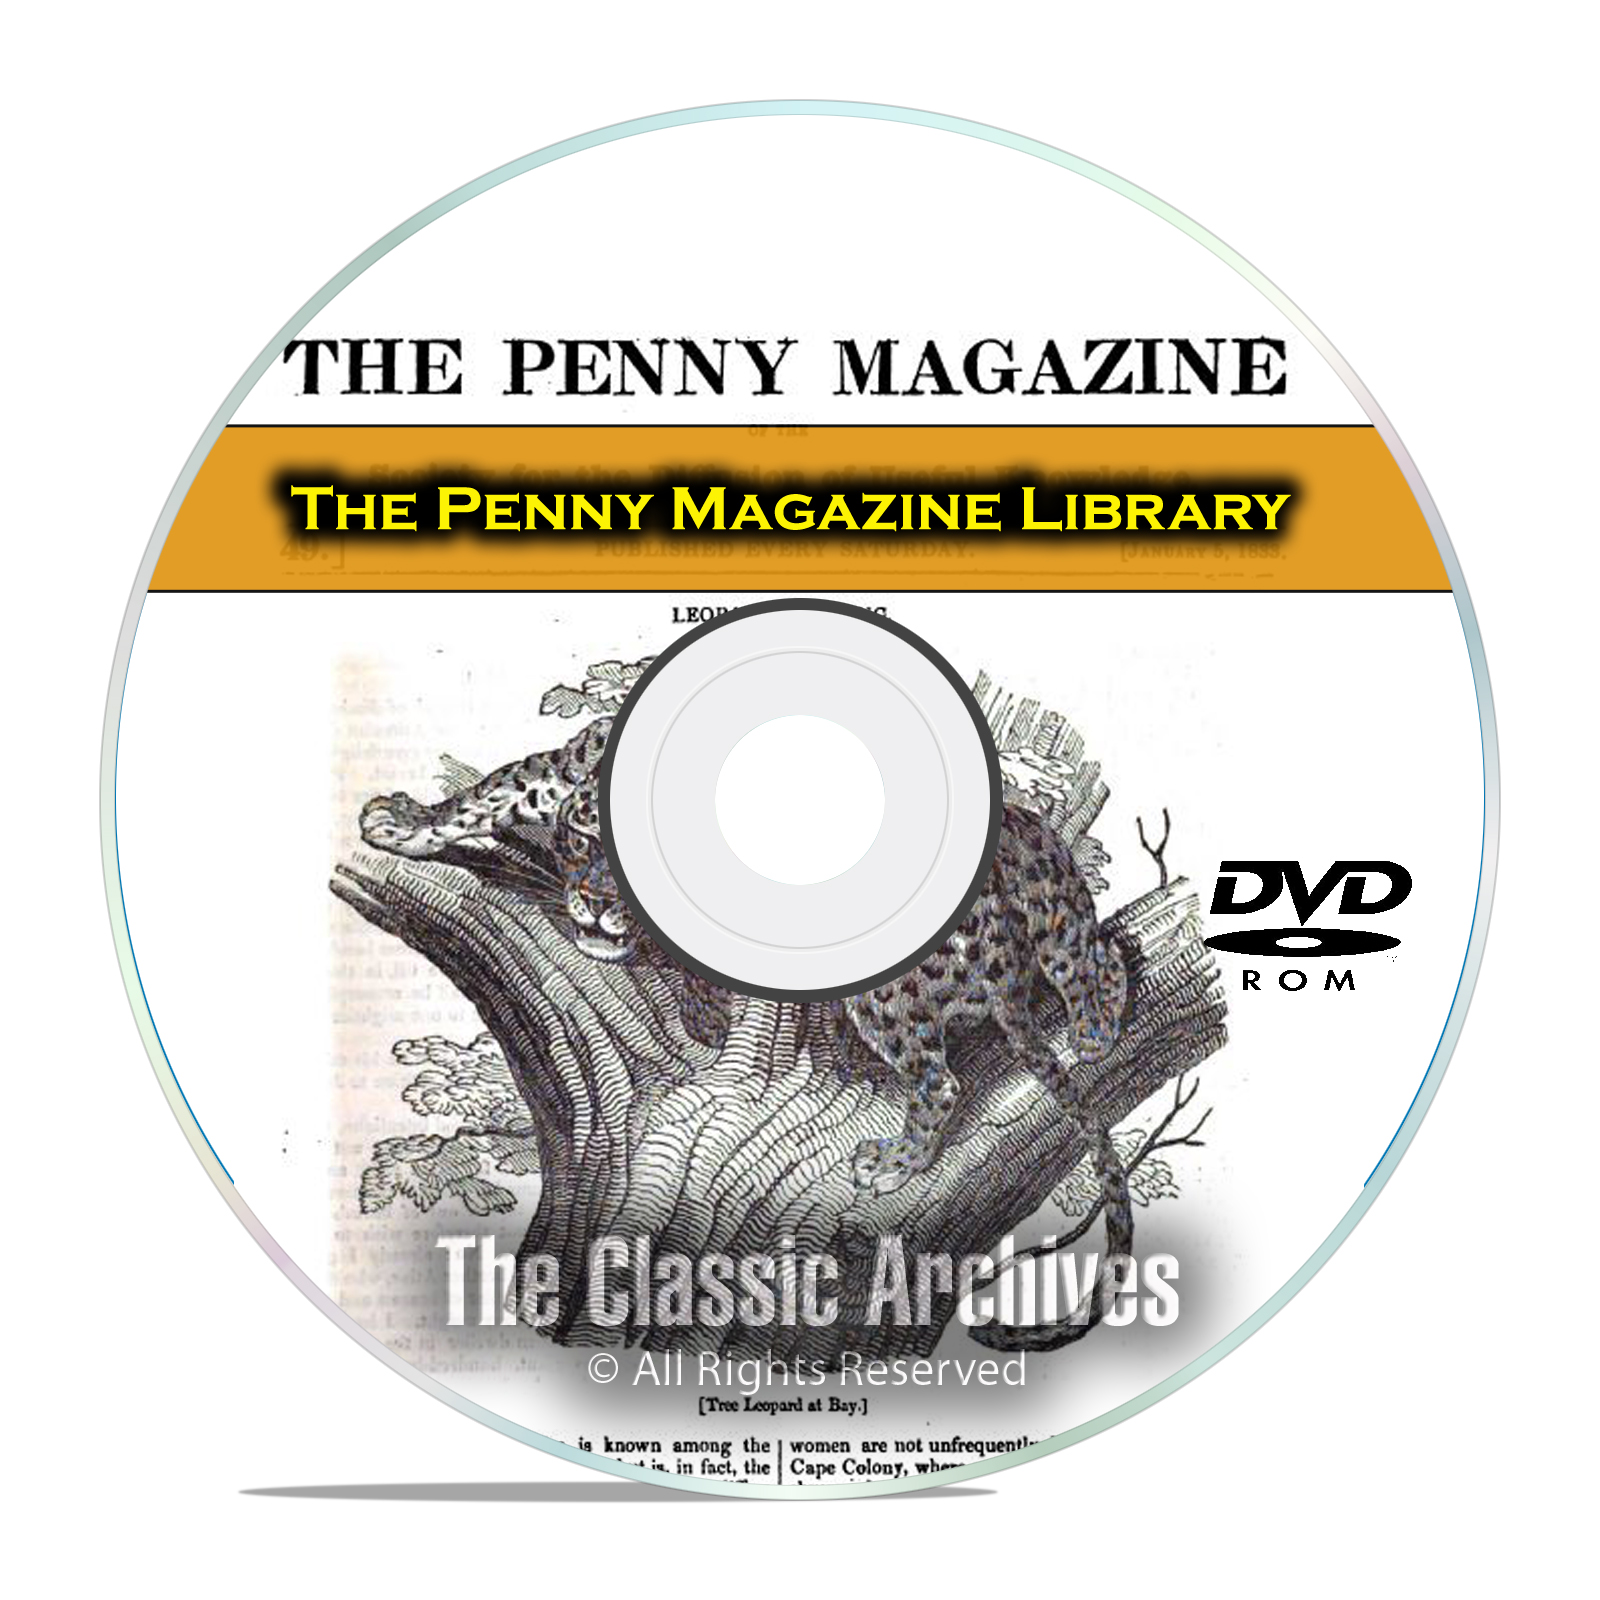 The Penny Magazine, 884 Issues, Useful Knowledge 30 Vol Cyclopaedia PDF DVD